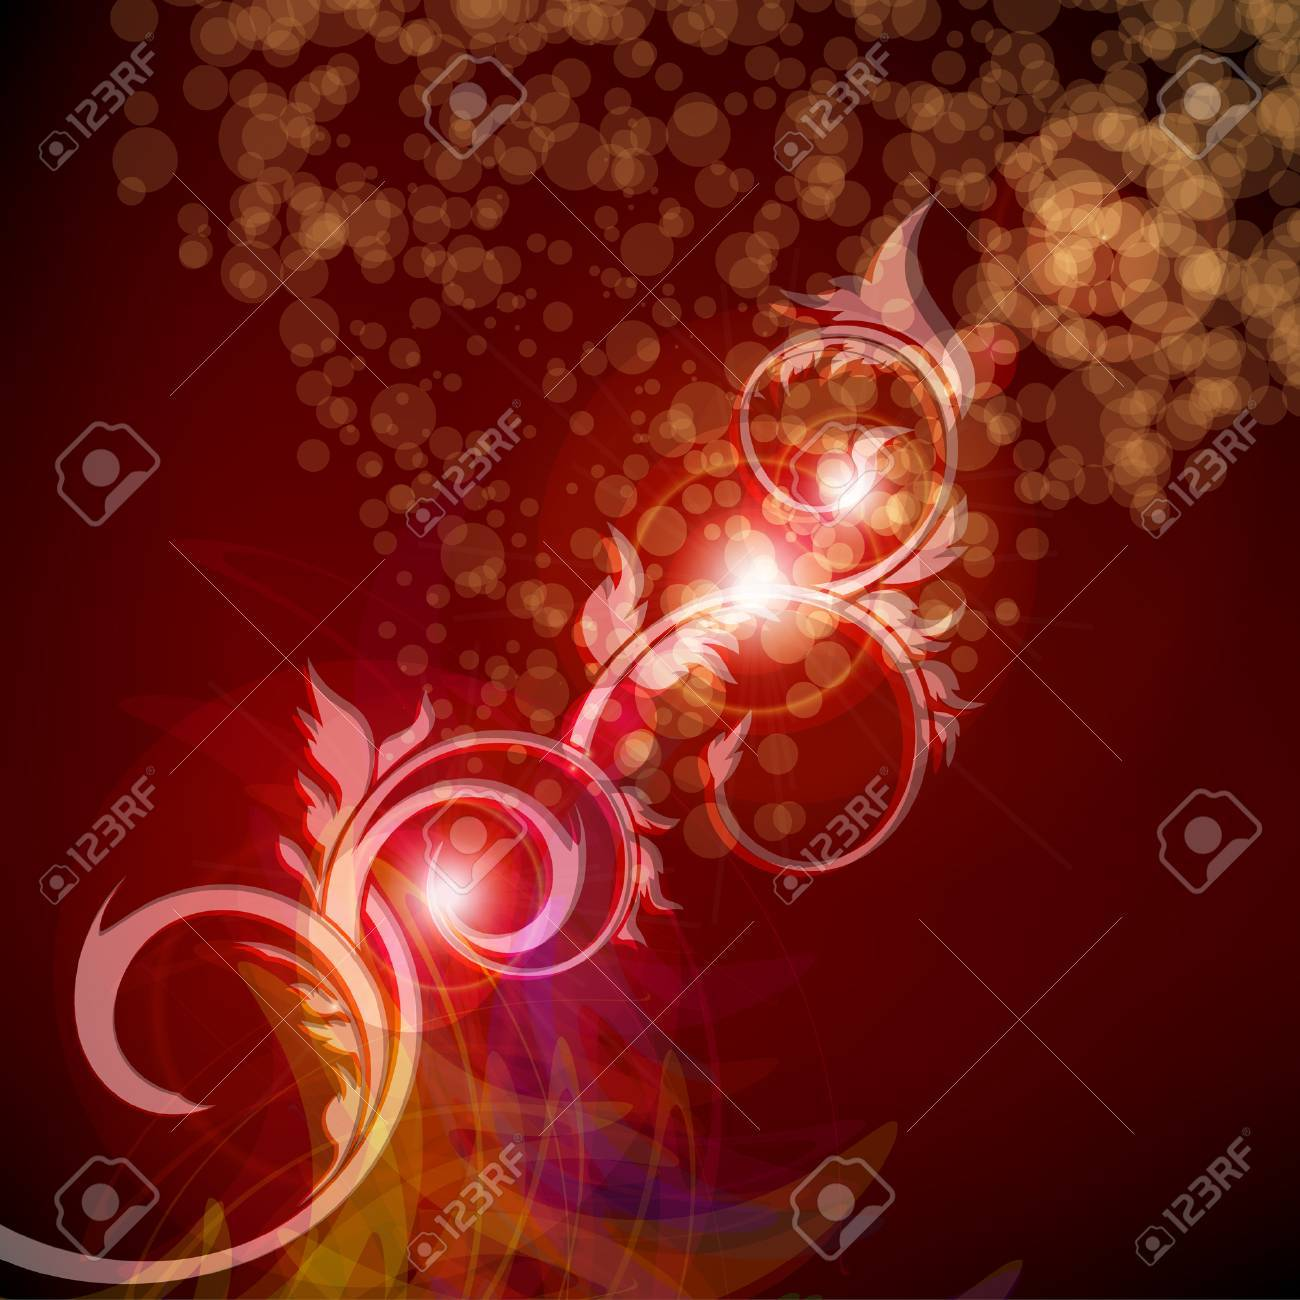 abstract background - 8286136